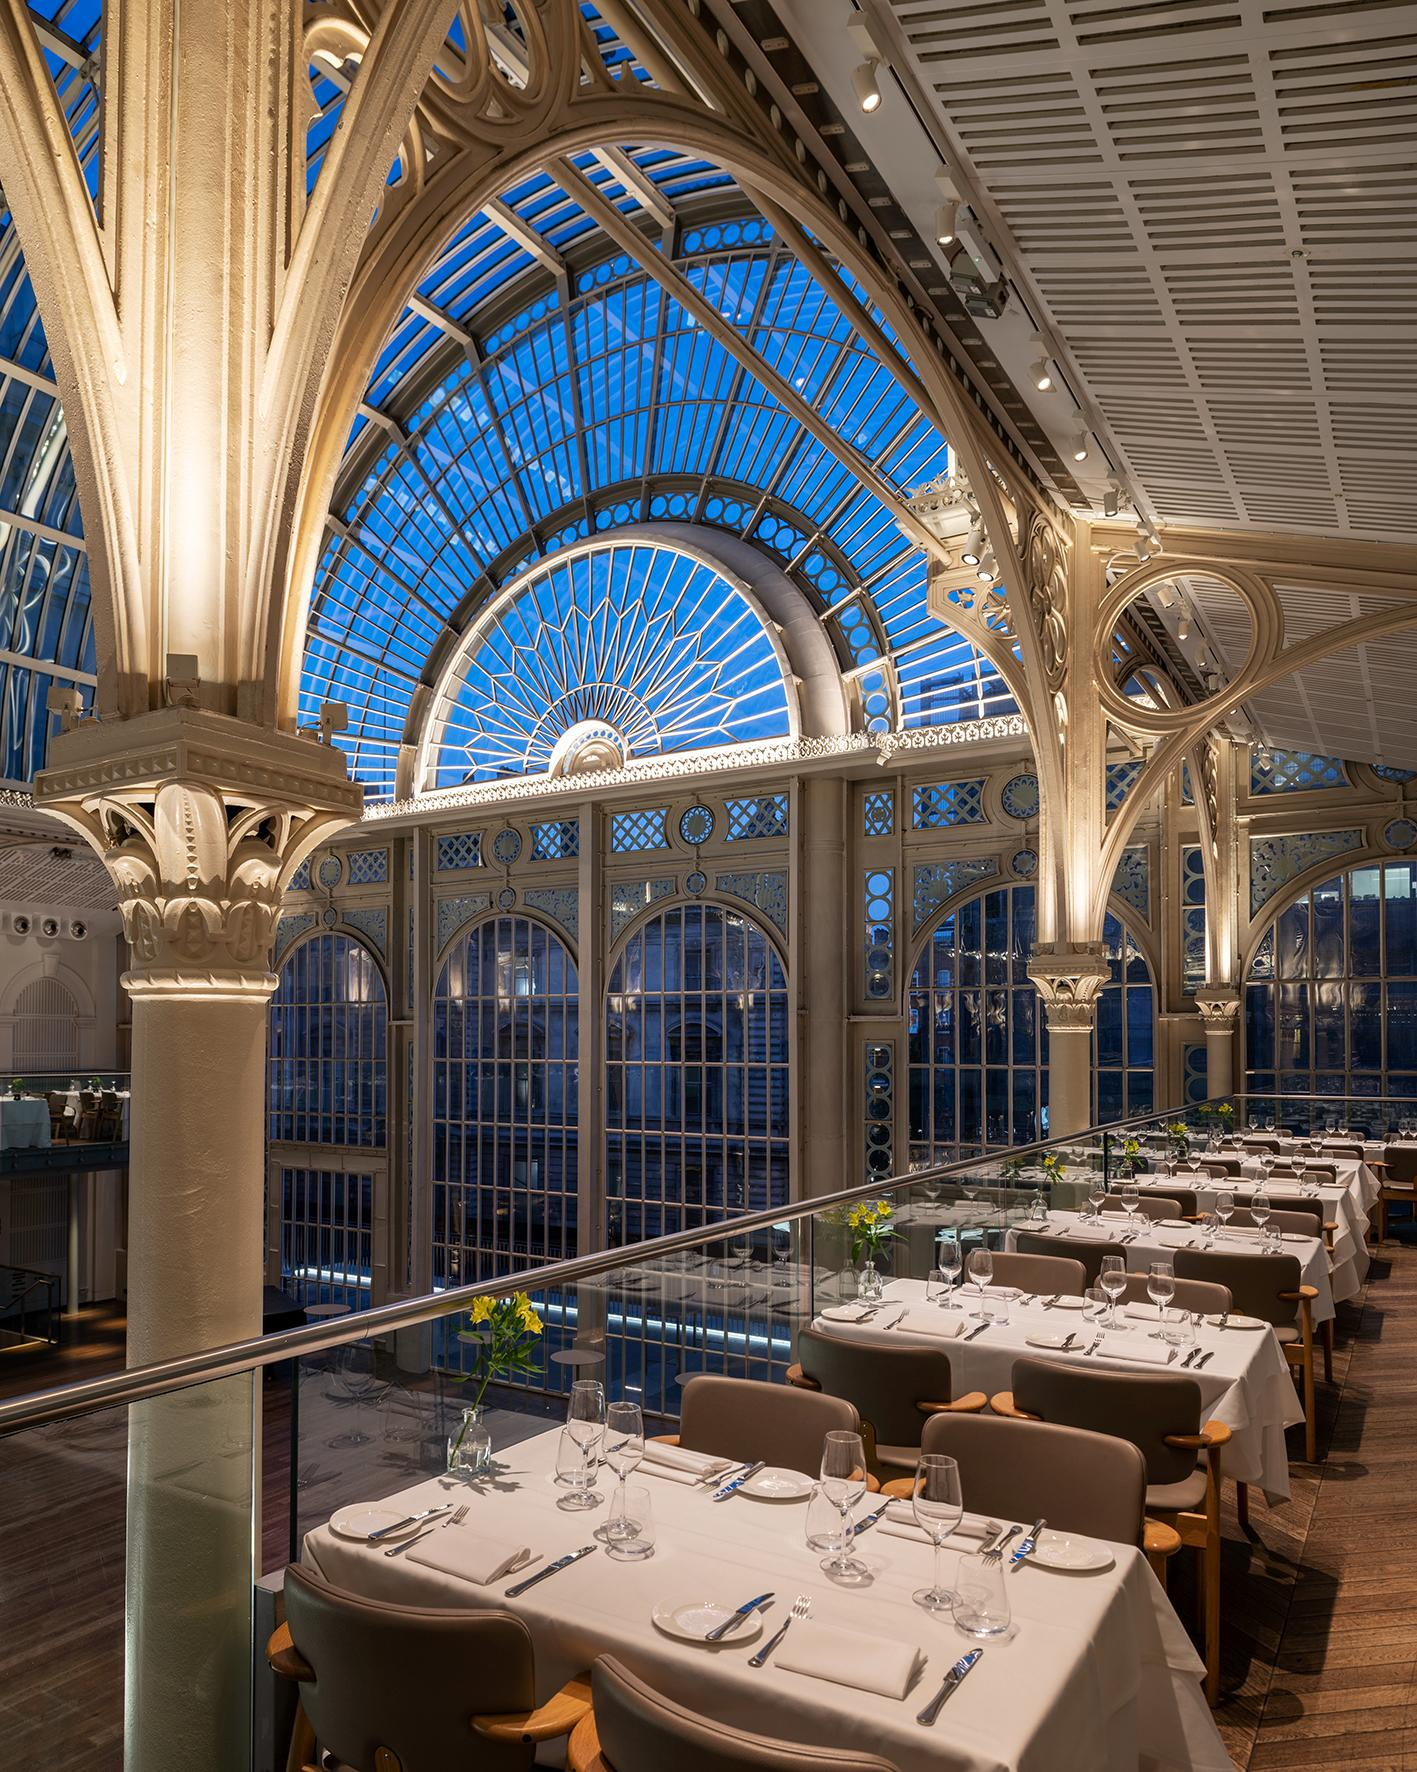 The Level 5 Restaurant is located above the airy Paul Hamlyn Hall. / Courtesy of Royal Opera House/ Image by James Newton